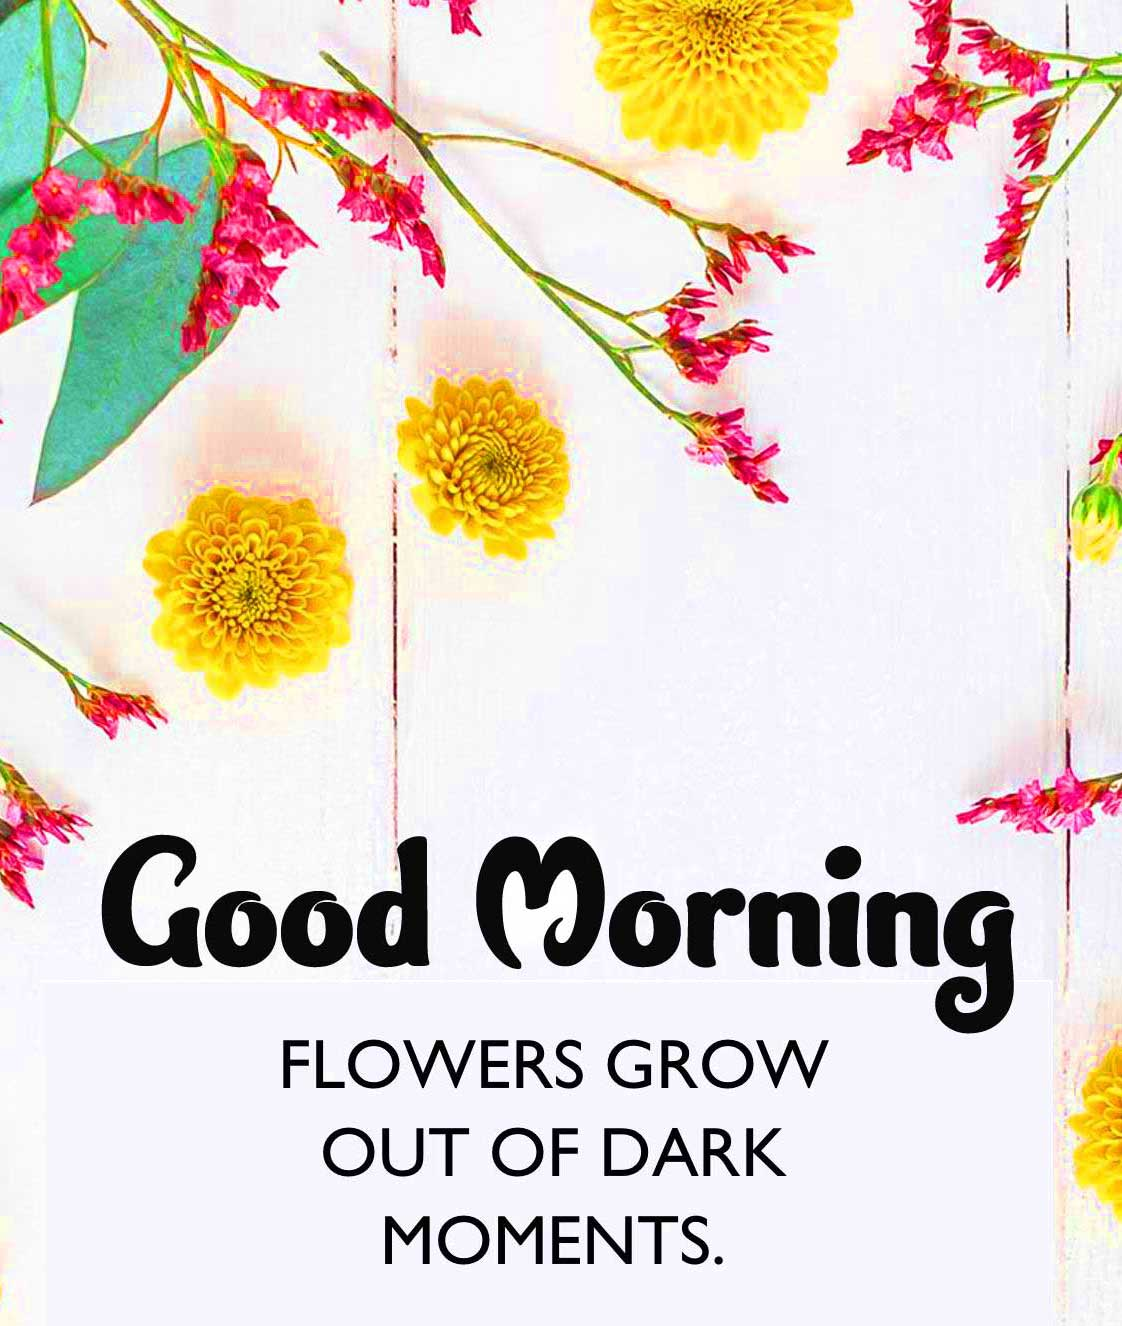 Good Morning Images with English Thought Wallpaper Pics Download